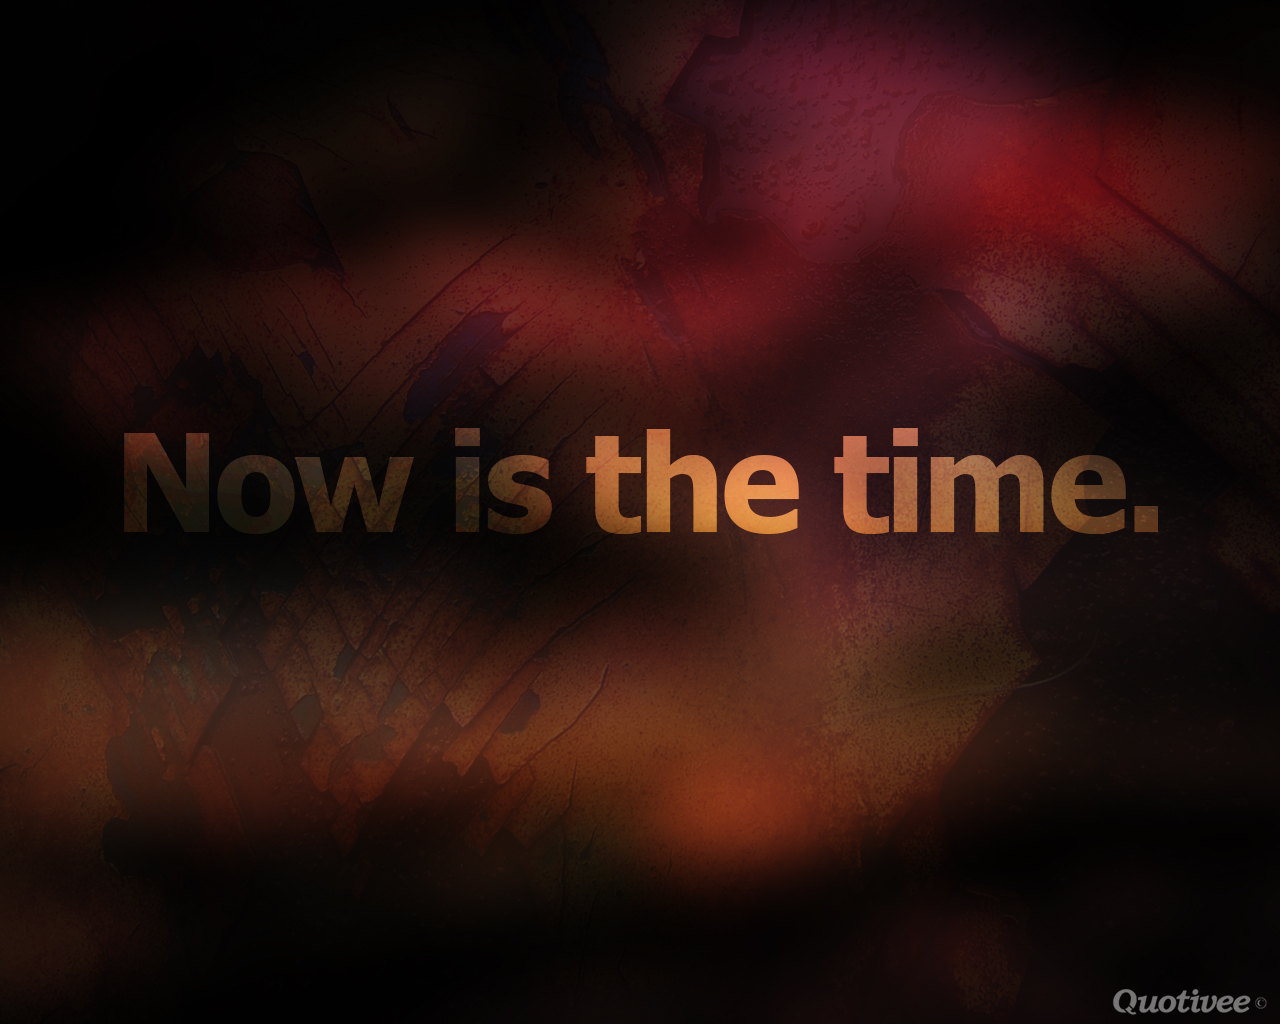 quotivee_1280x1024_0007_Now is the time.